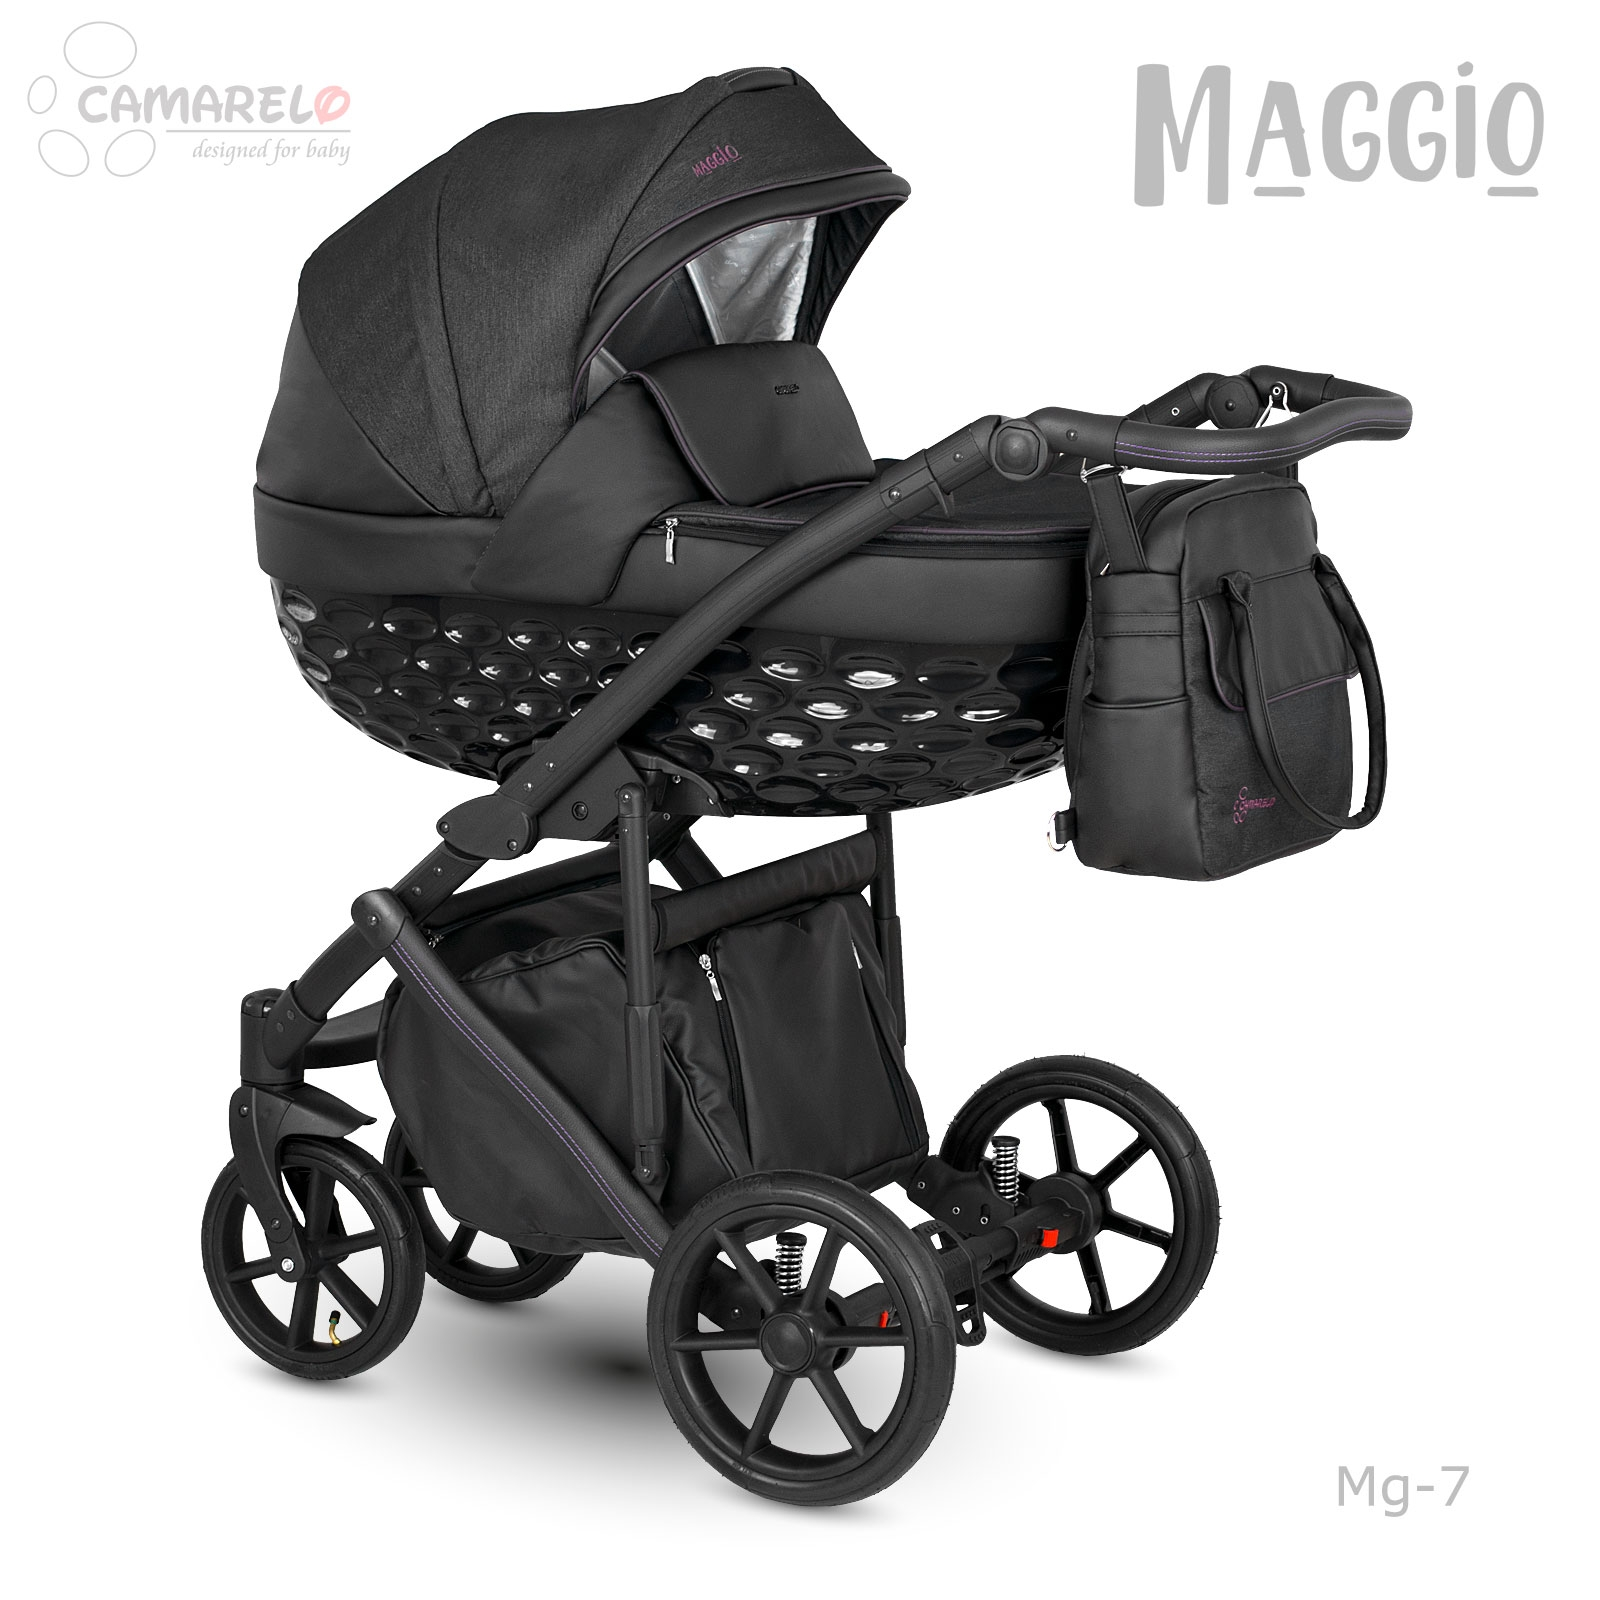 Carucior copii 2 in 1 Maggio Camarelo Mg-7 imagine